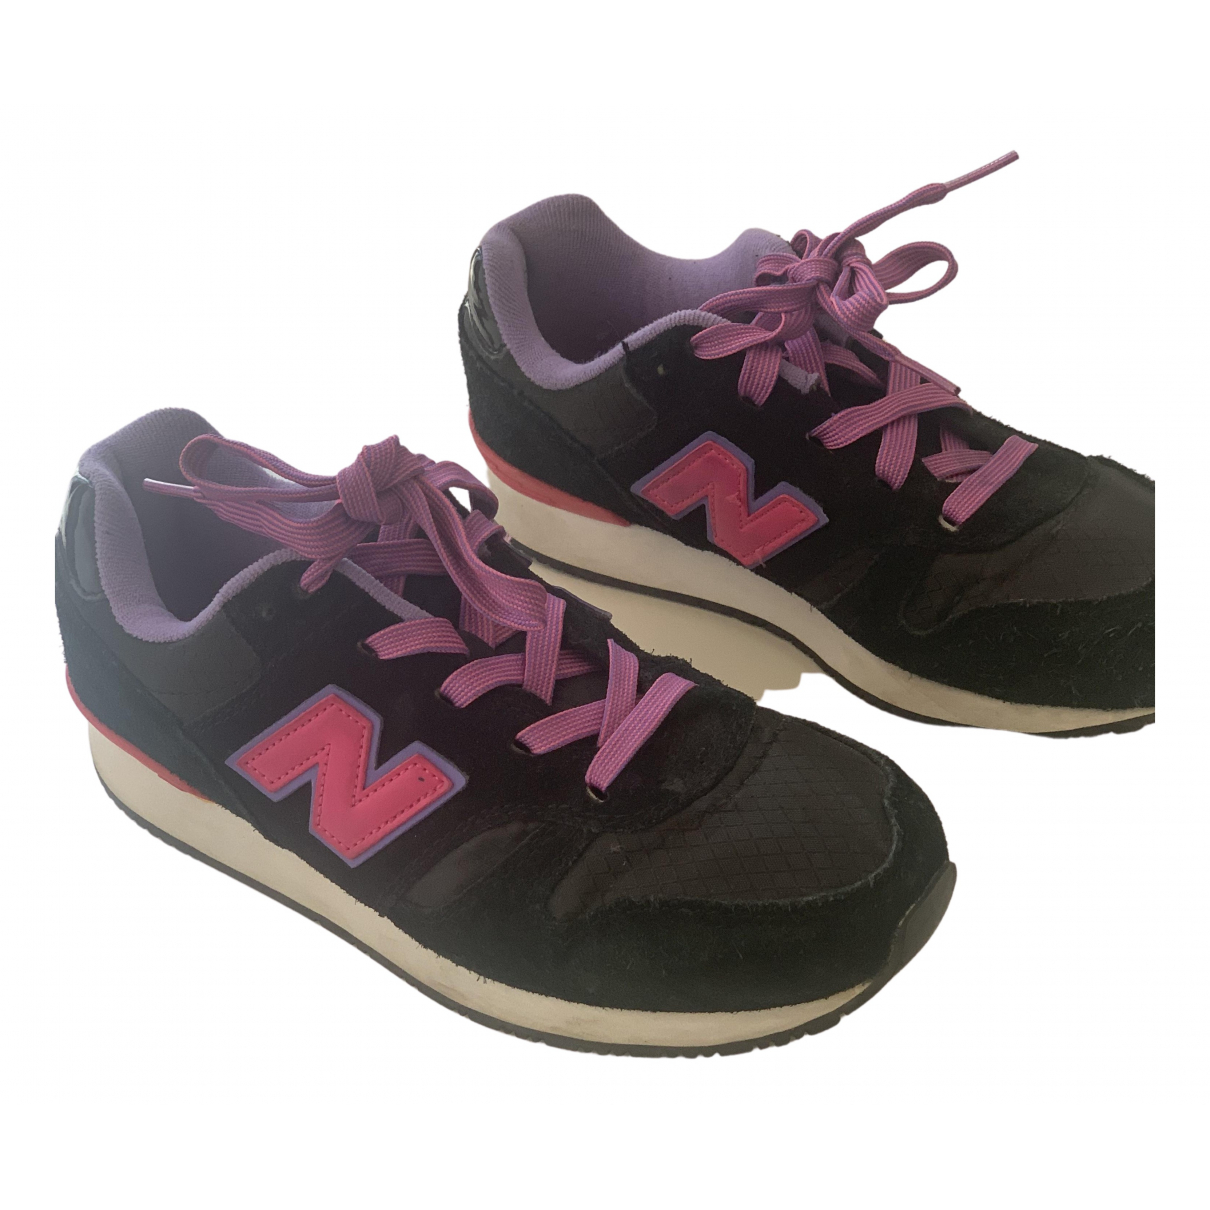 New Balance N Black Suede Trainers for Women 37 EU